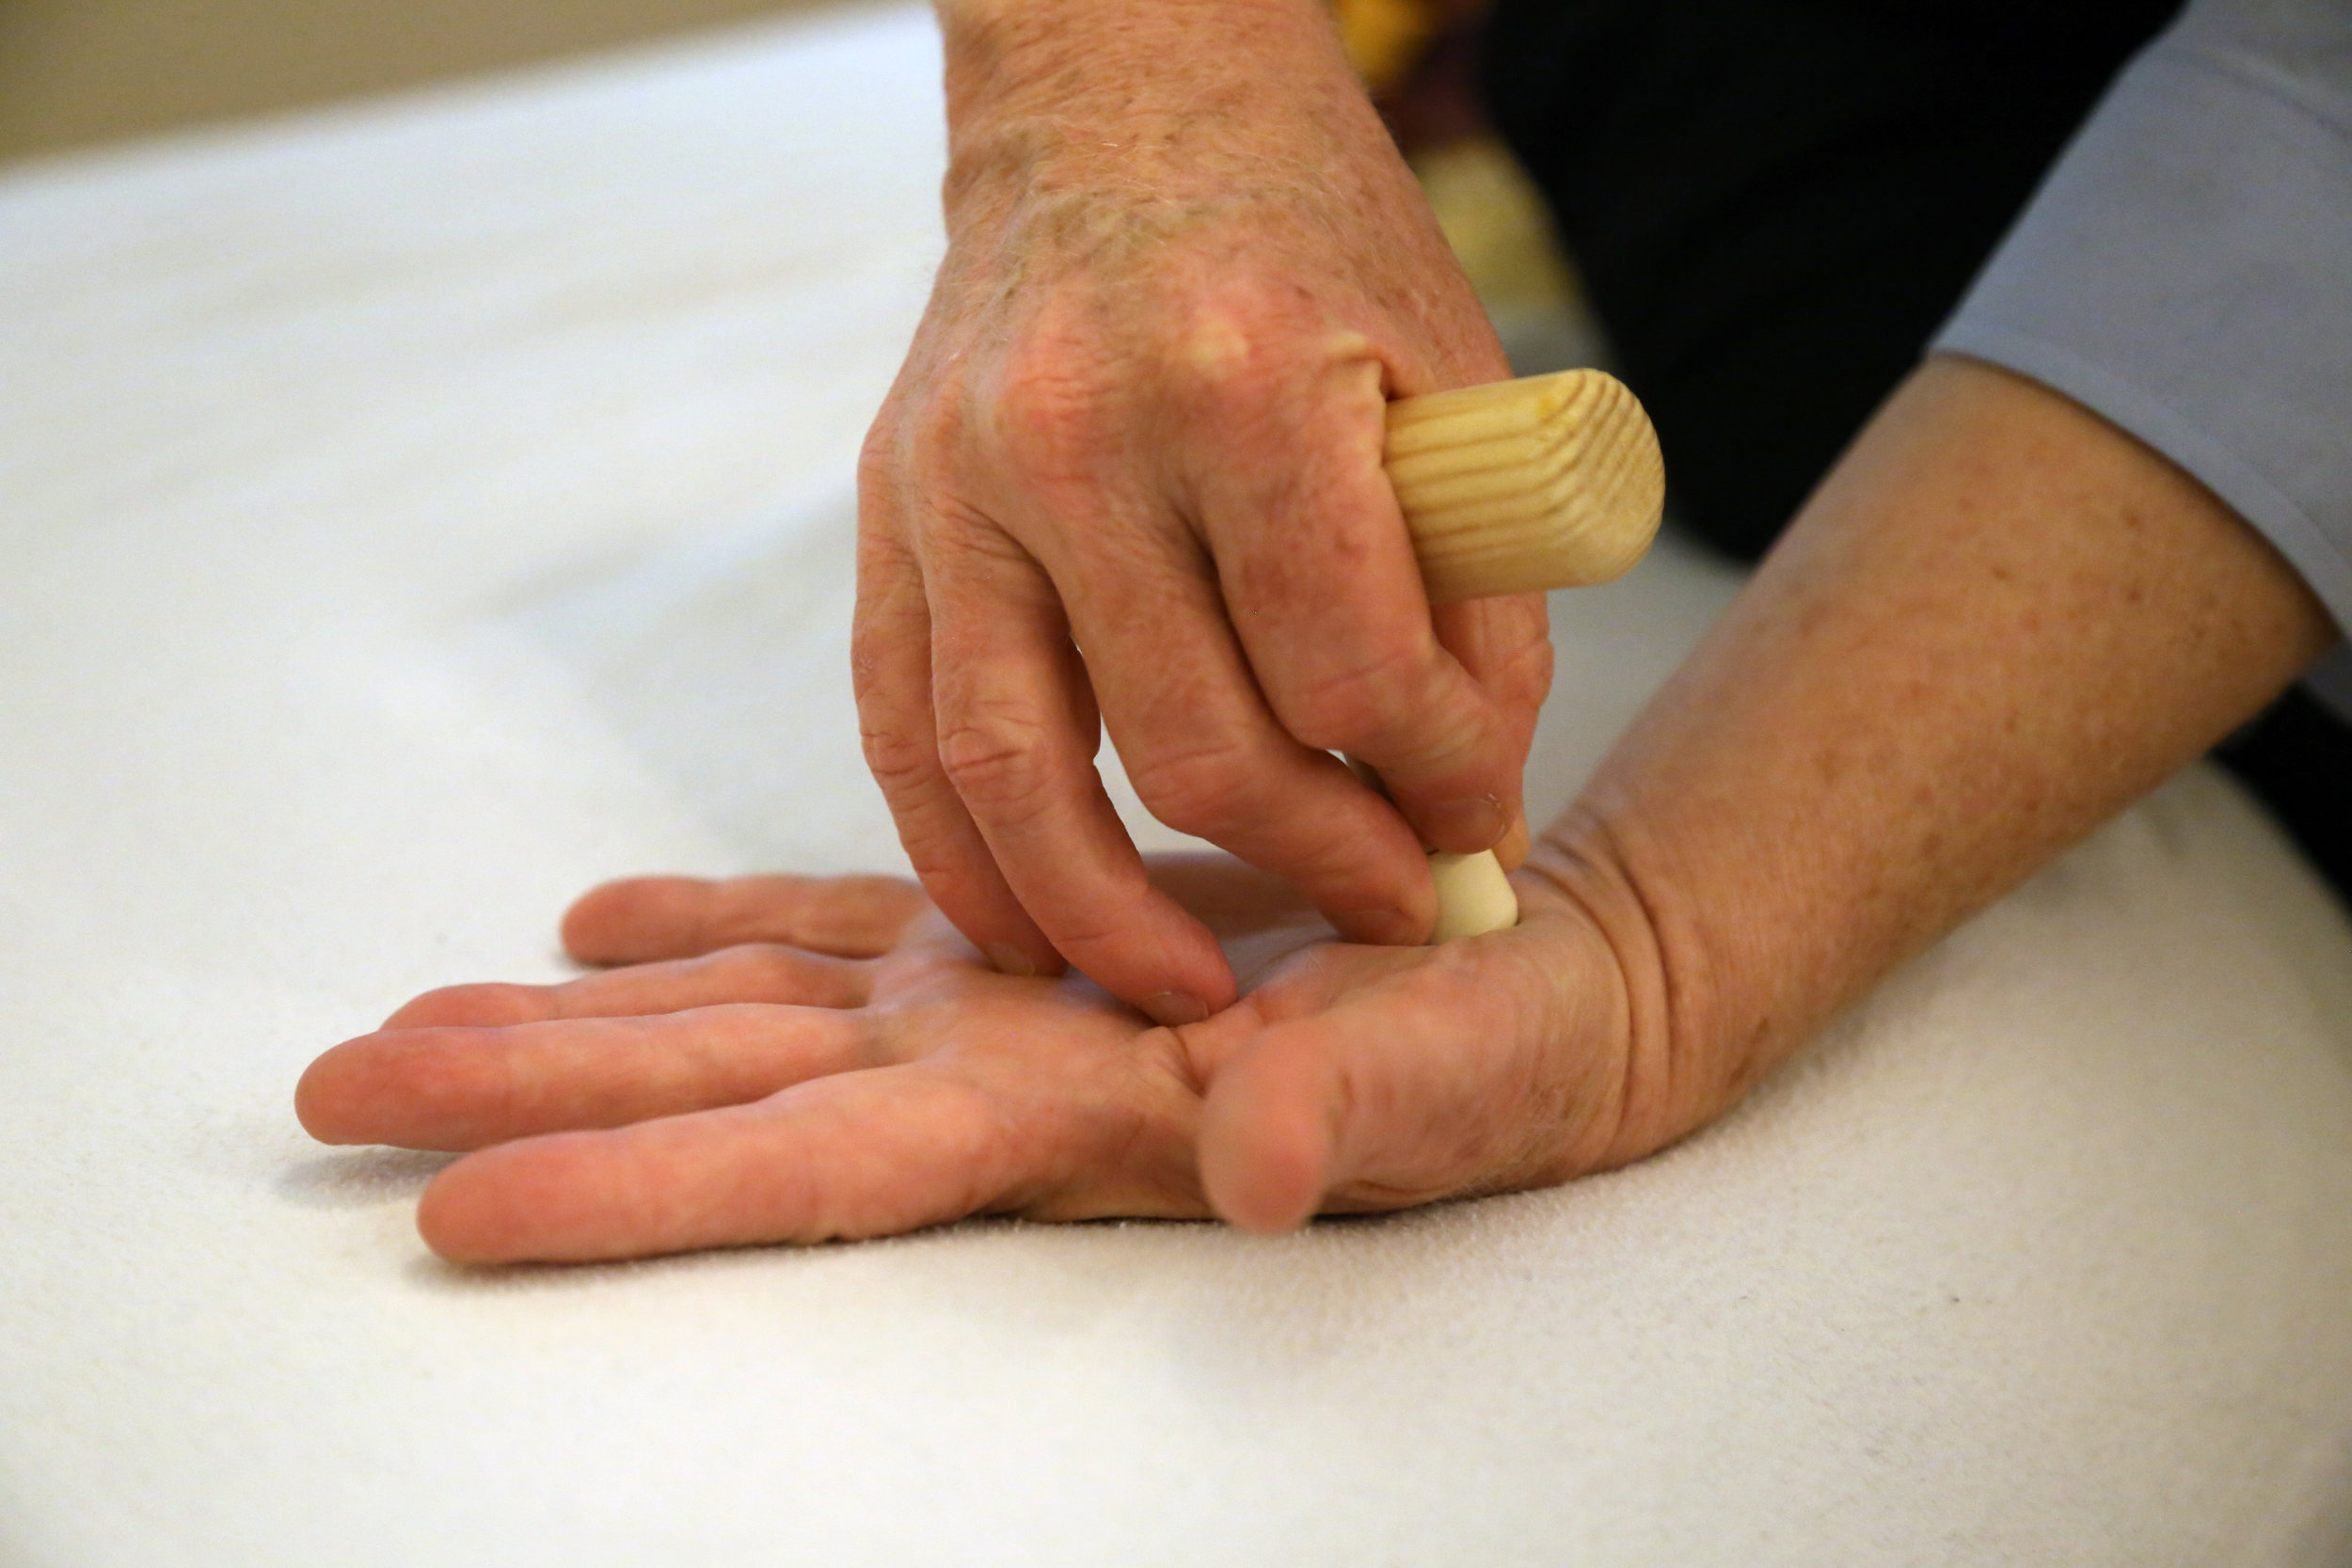 T-Bar treatment of the metacarpal spaces